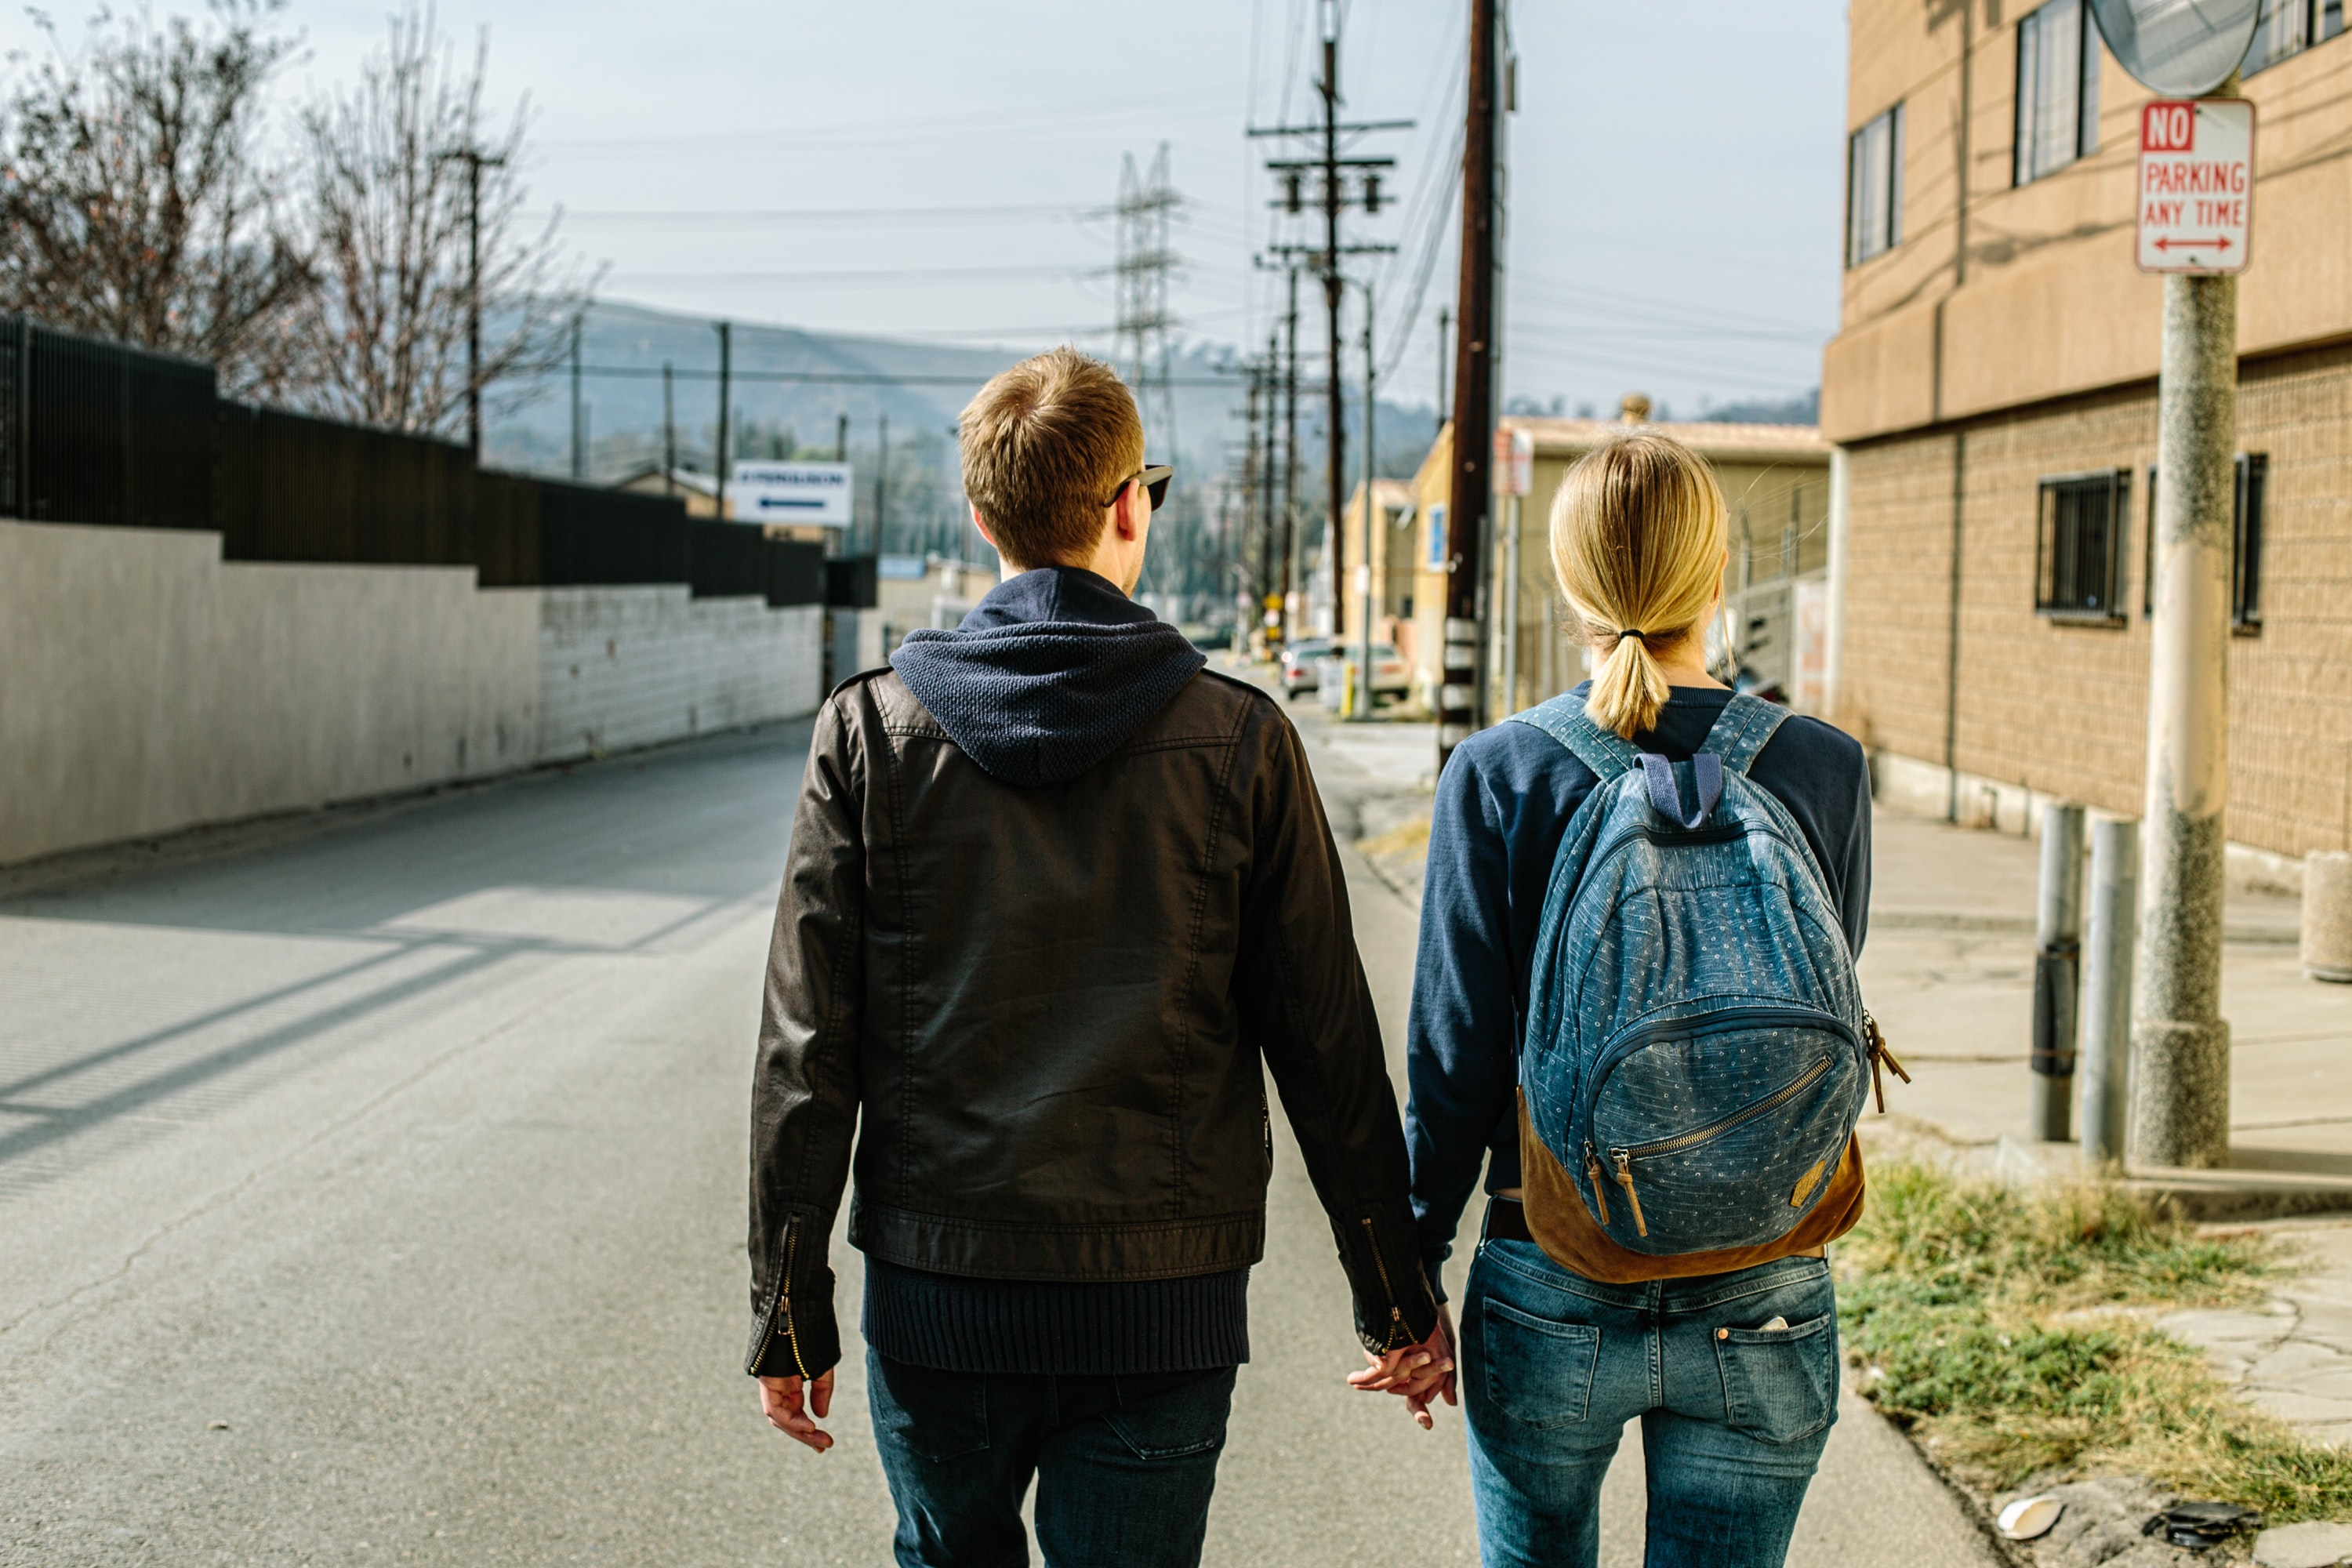 man holding hands of woman walks on concrete road